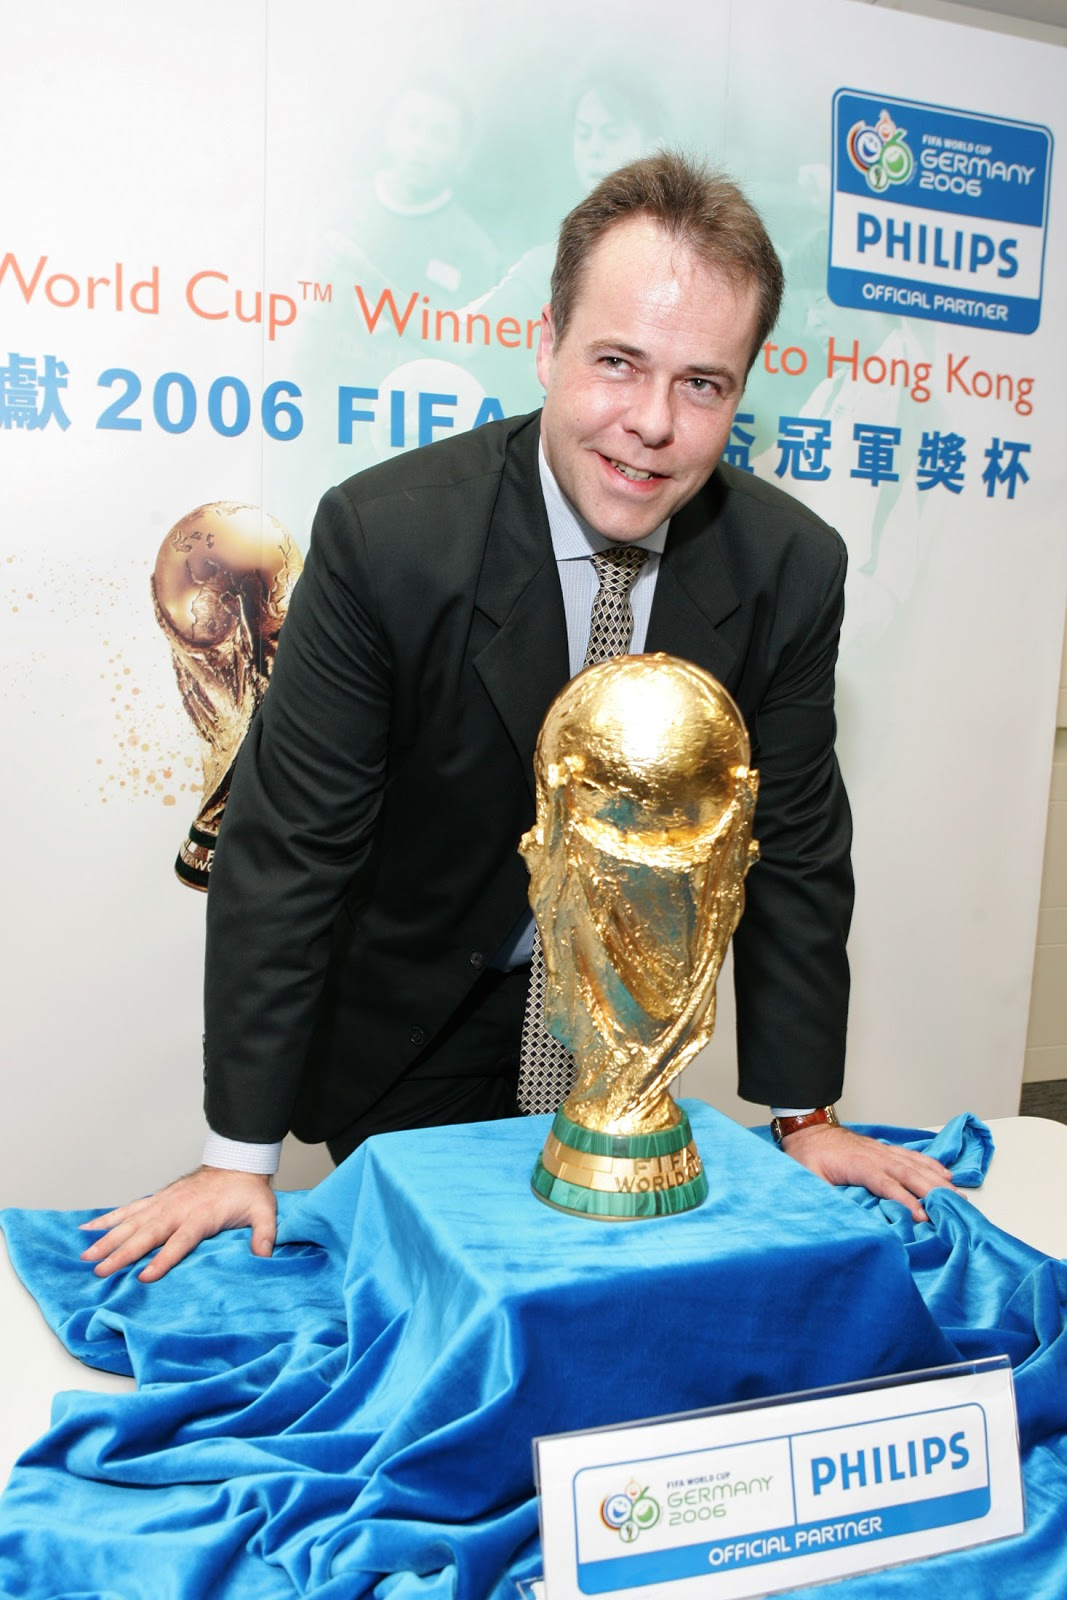 Stefan Kolle and the World Cup